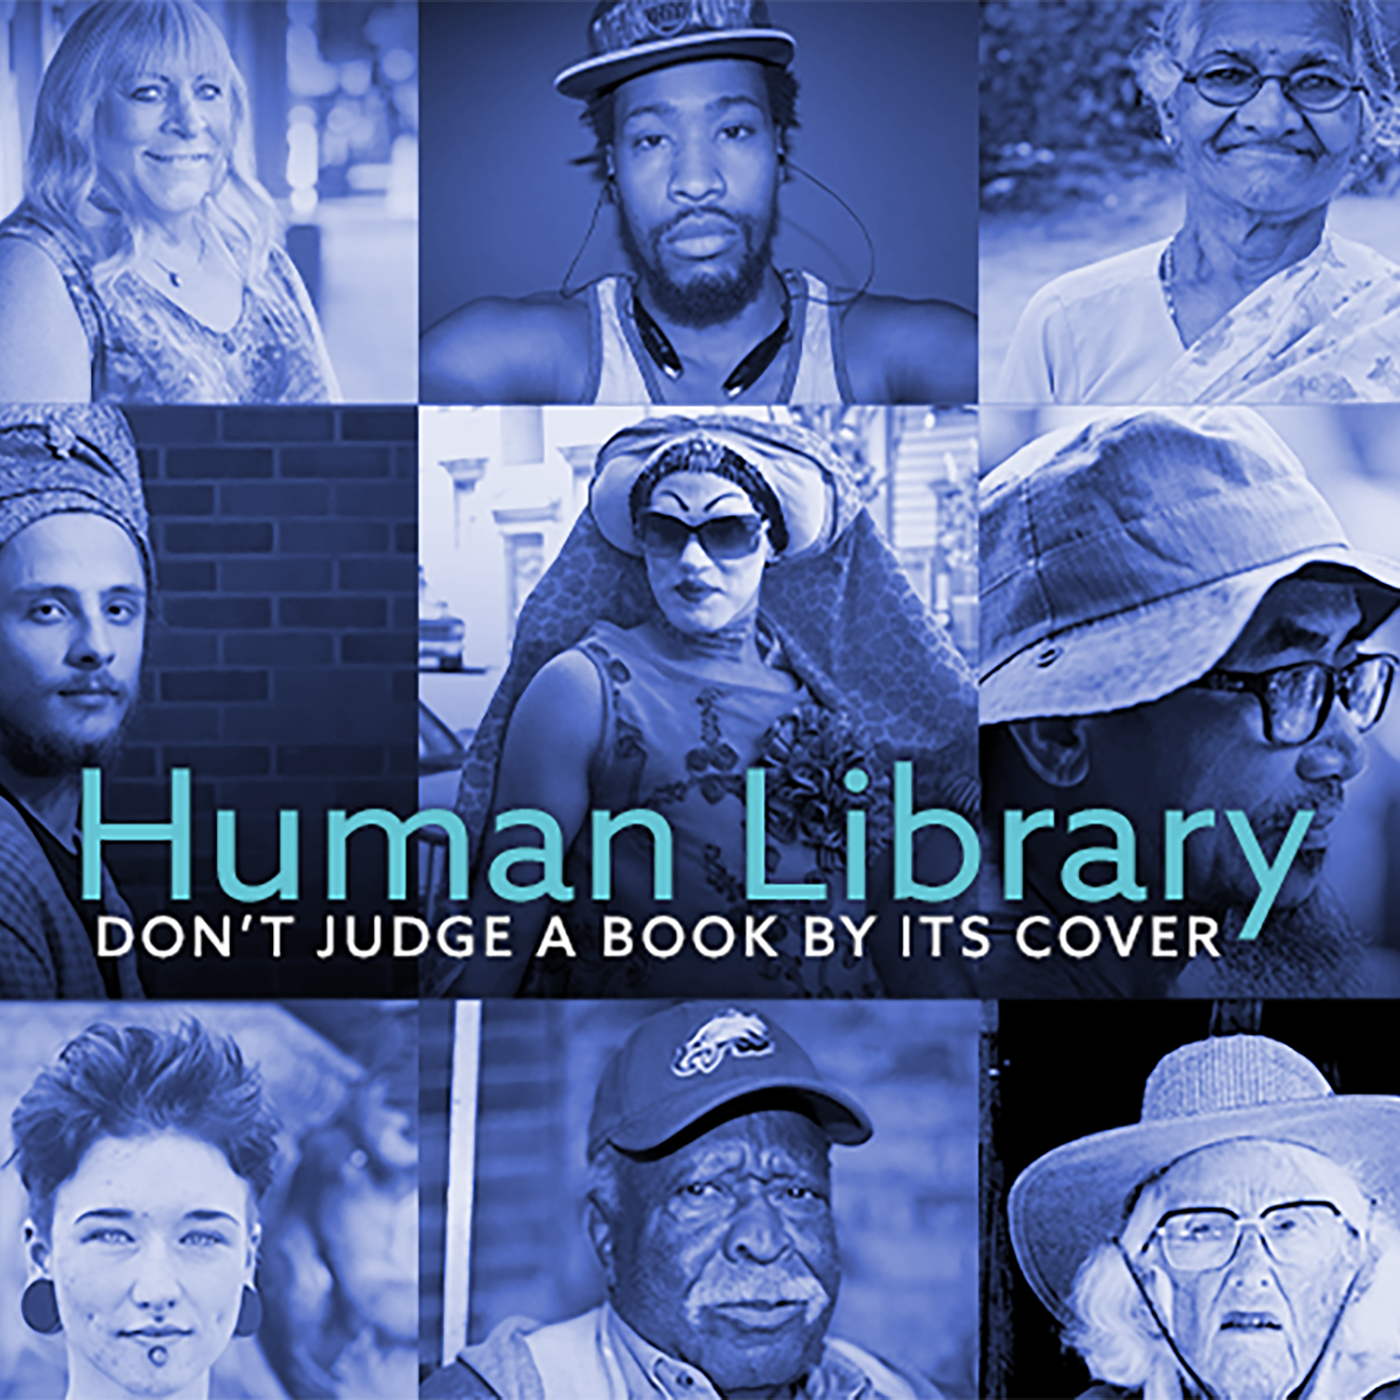 Caption: Human Library Banner